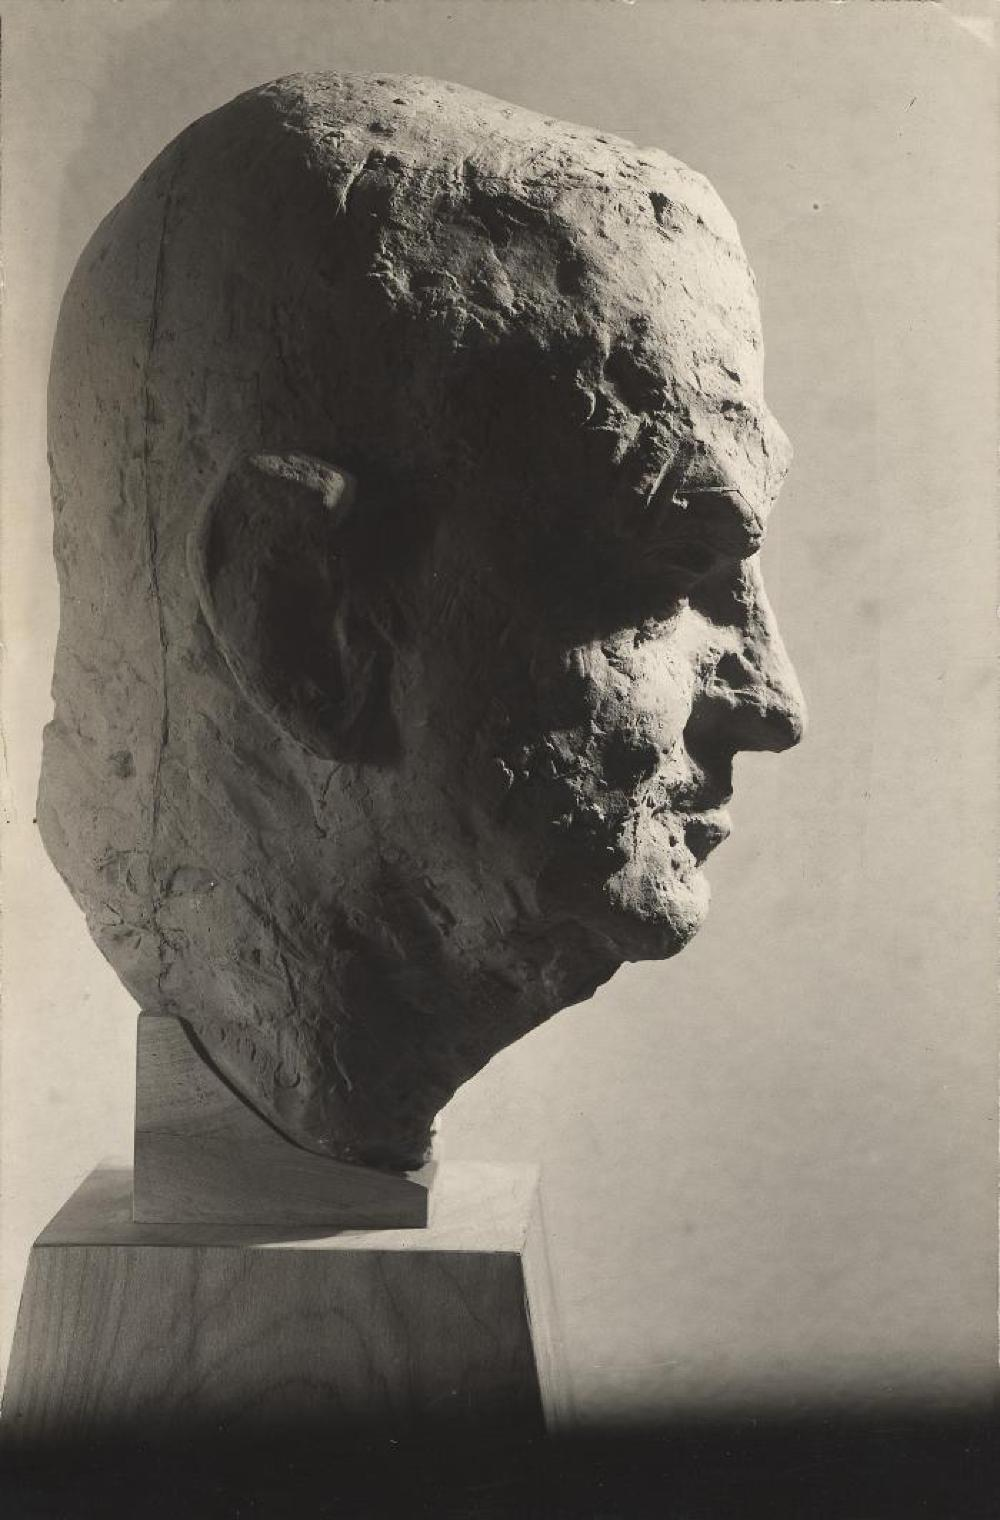 A. Conger Goodyear, image 3